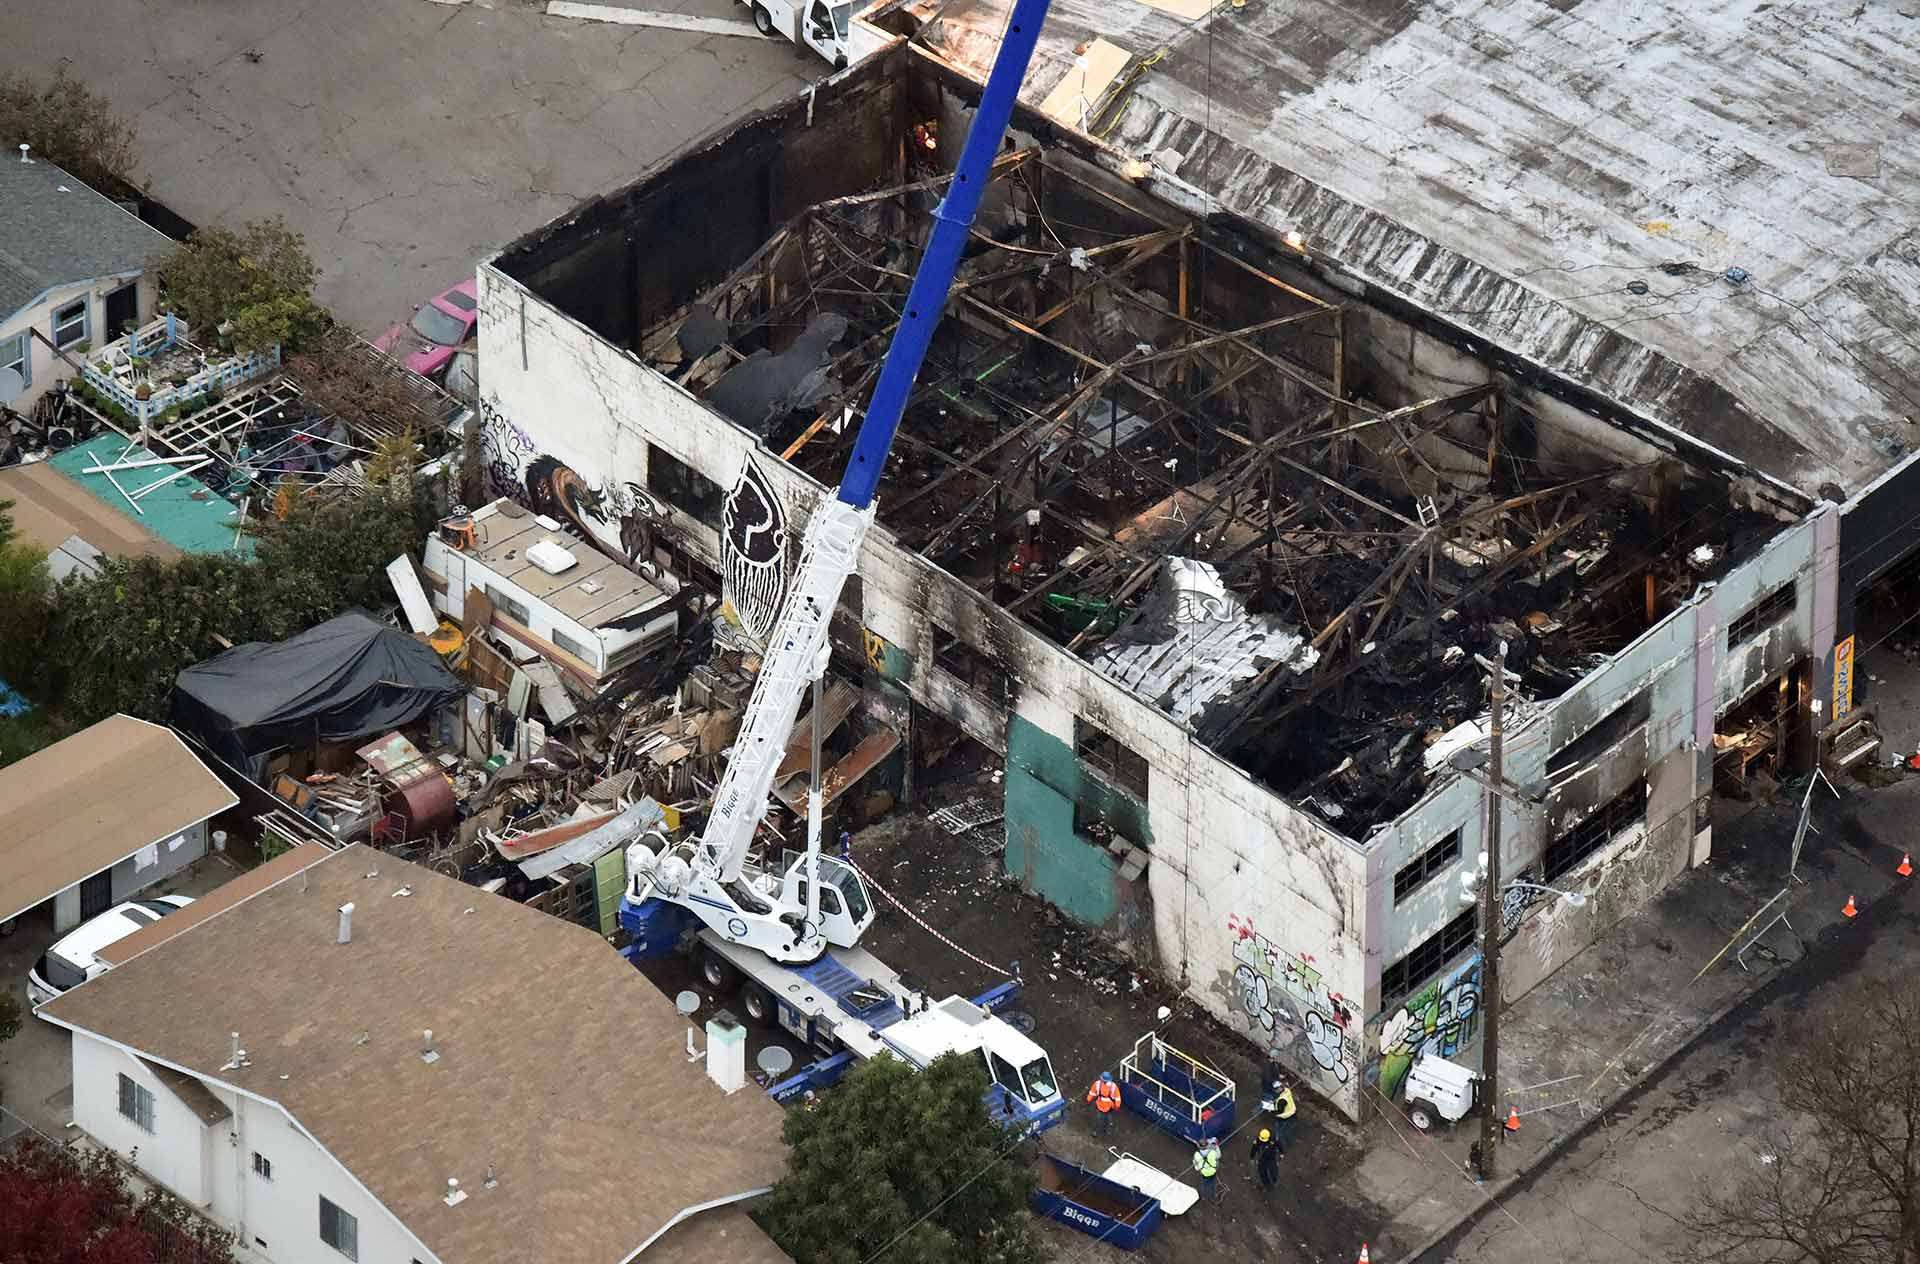 Two Charged With Manslaughter in Oakland's Ghost Ship Fire